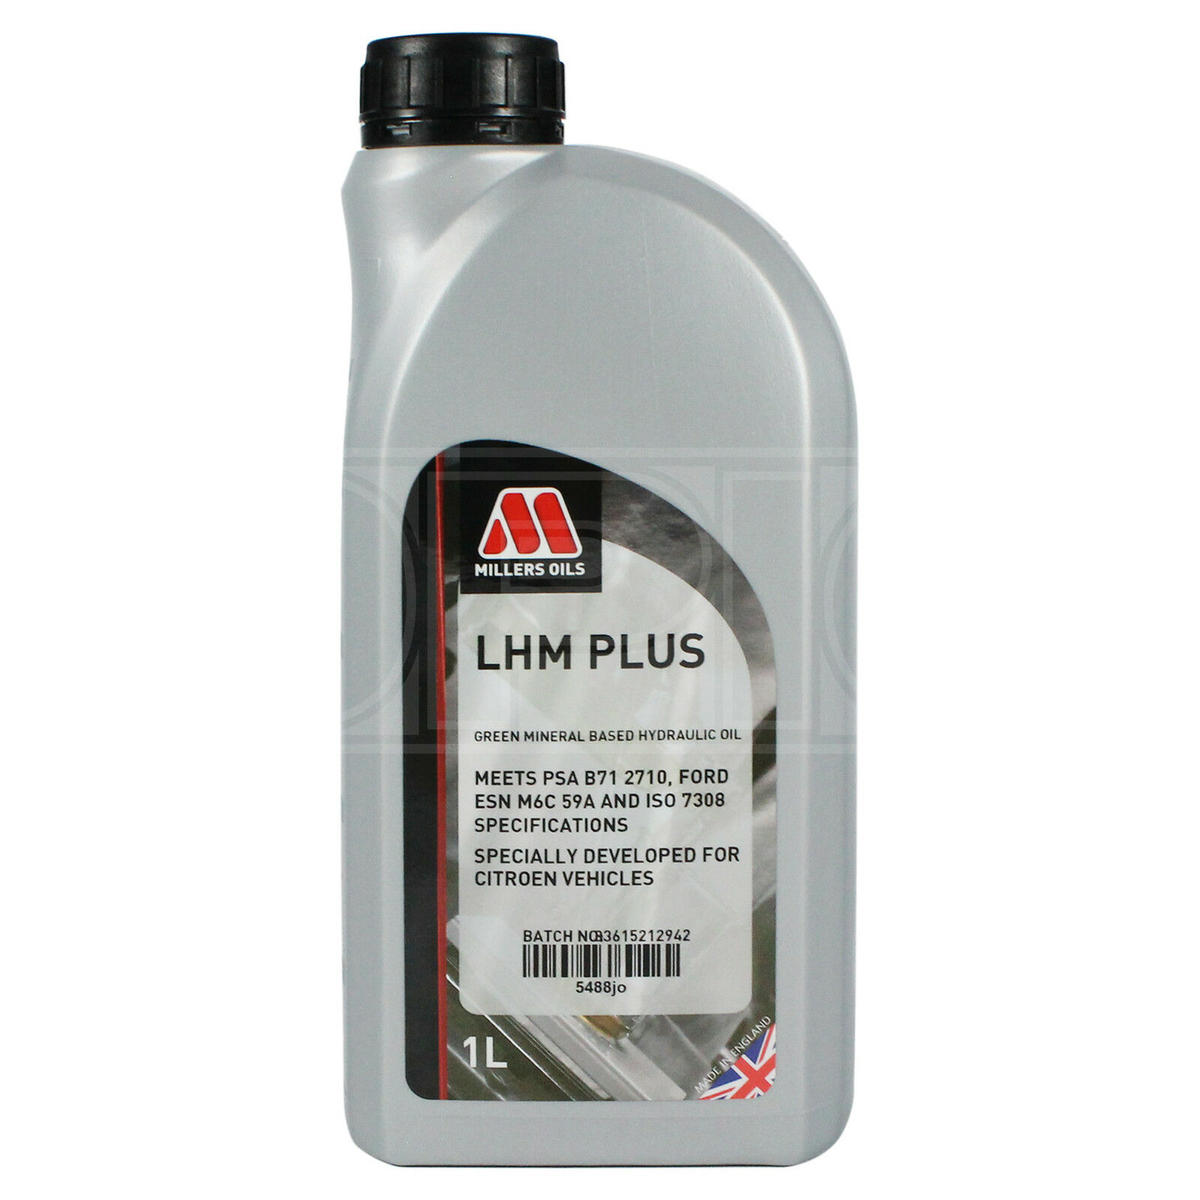 Millers Oil 5488JN Mineral Based LHM PLUS Citroen cars 1 Litre Hydraulic Fluid